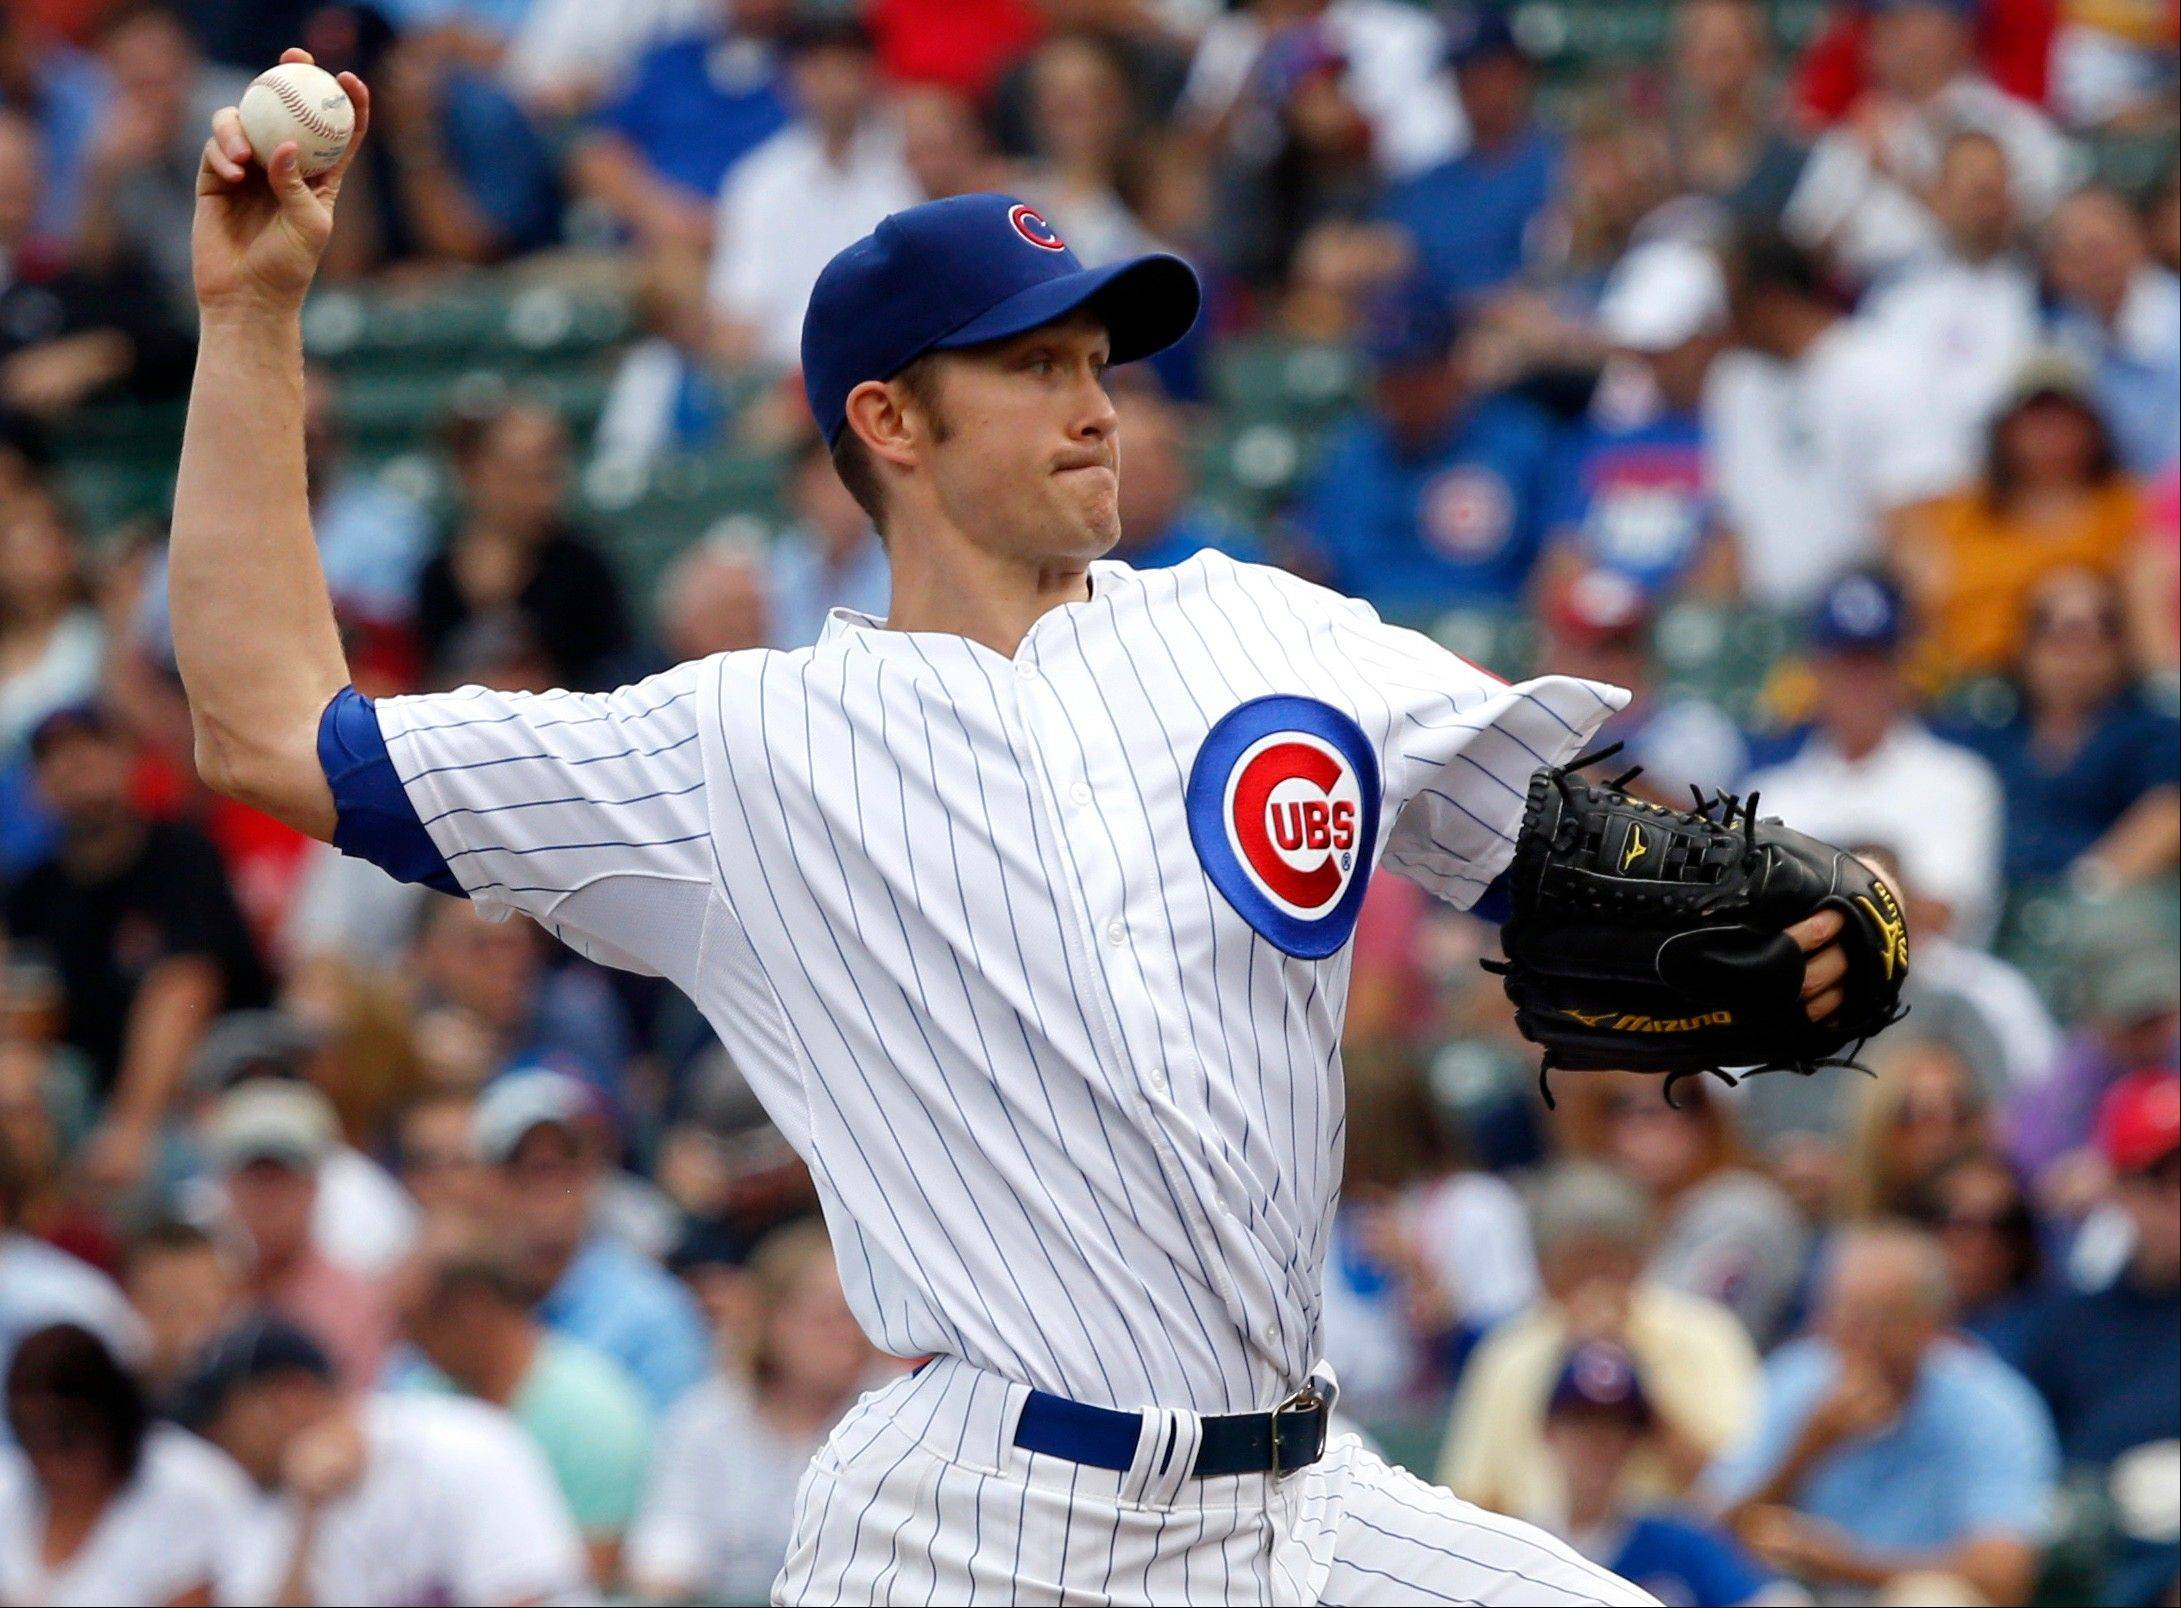 Chicago Cubs starting pitcher Scott Baker delivers during the first inning of a baseball game the Atlanta Braves Friday, Sept. 20, 2013, in Chicago. (AP Photo/Charles Rex Arbogast)